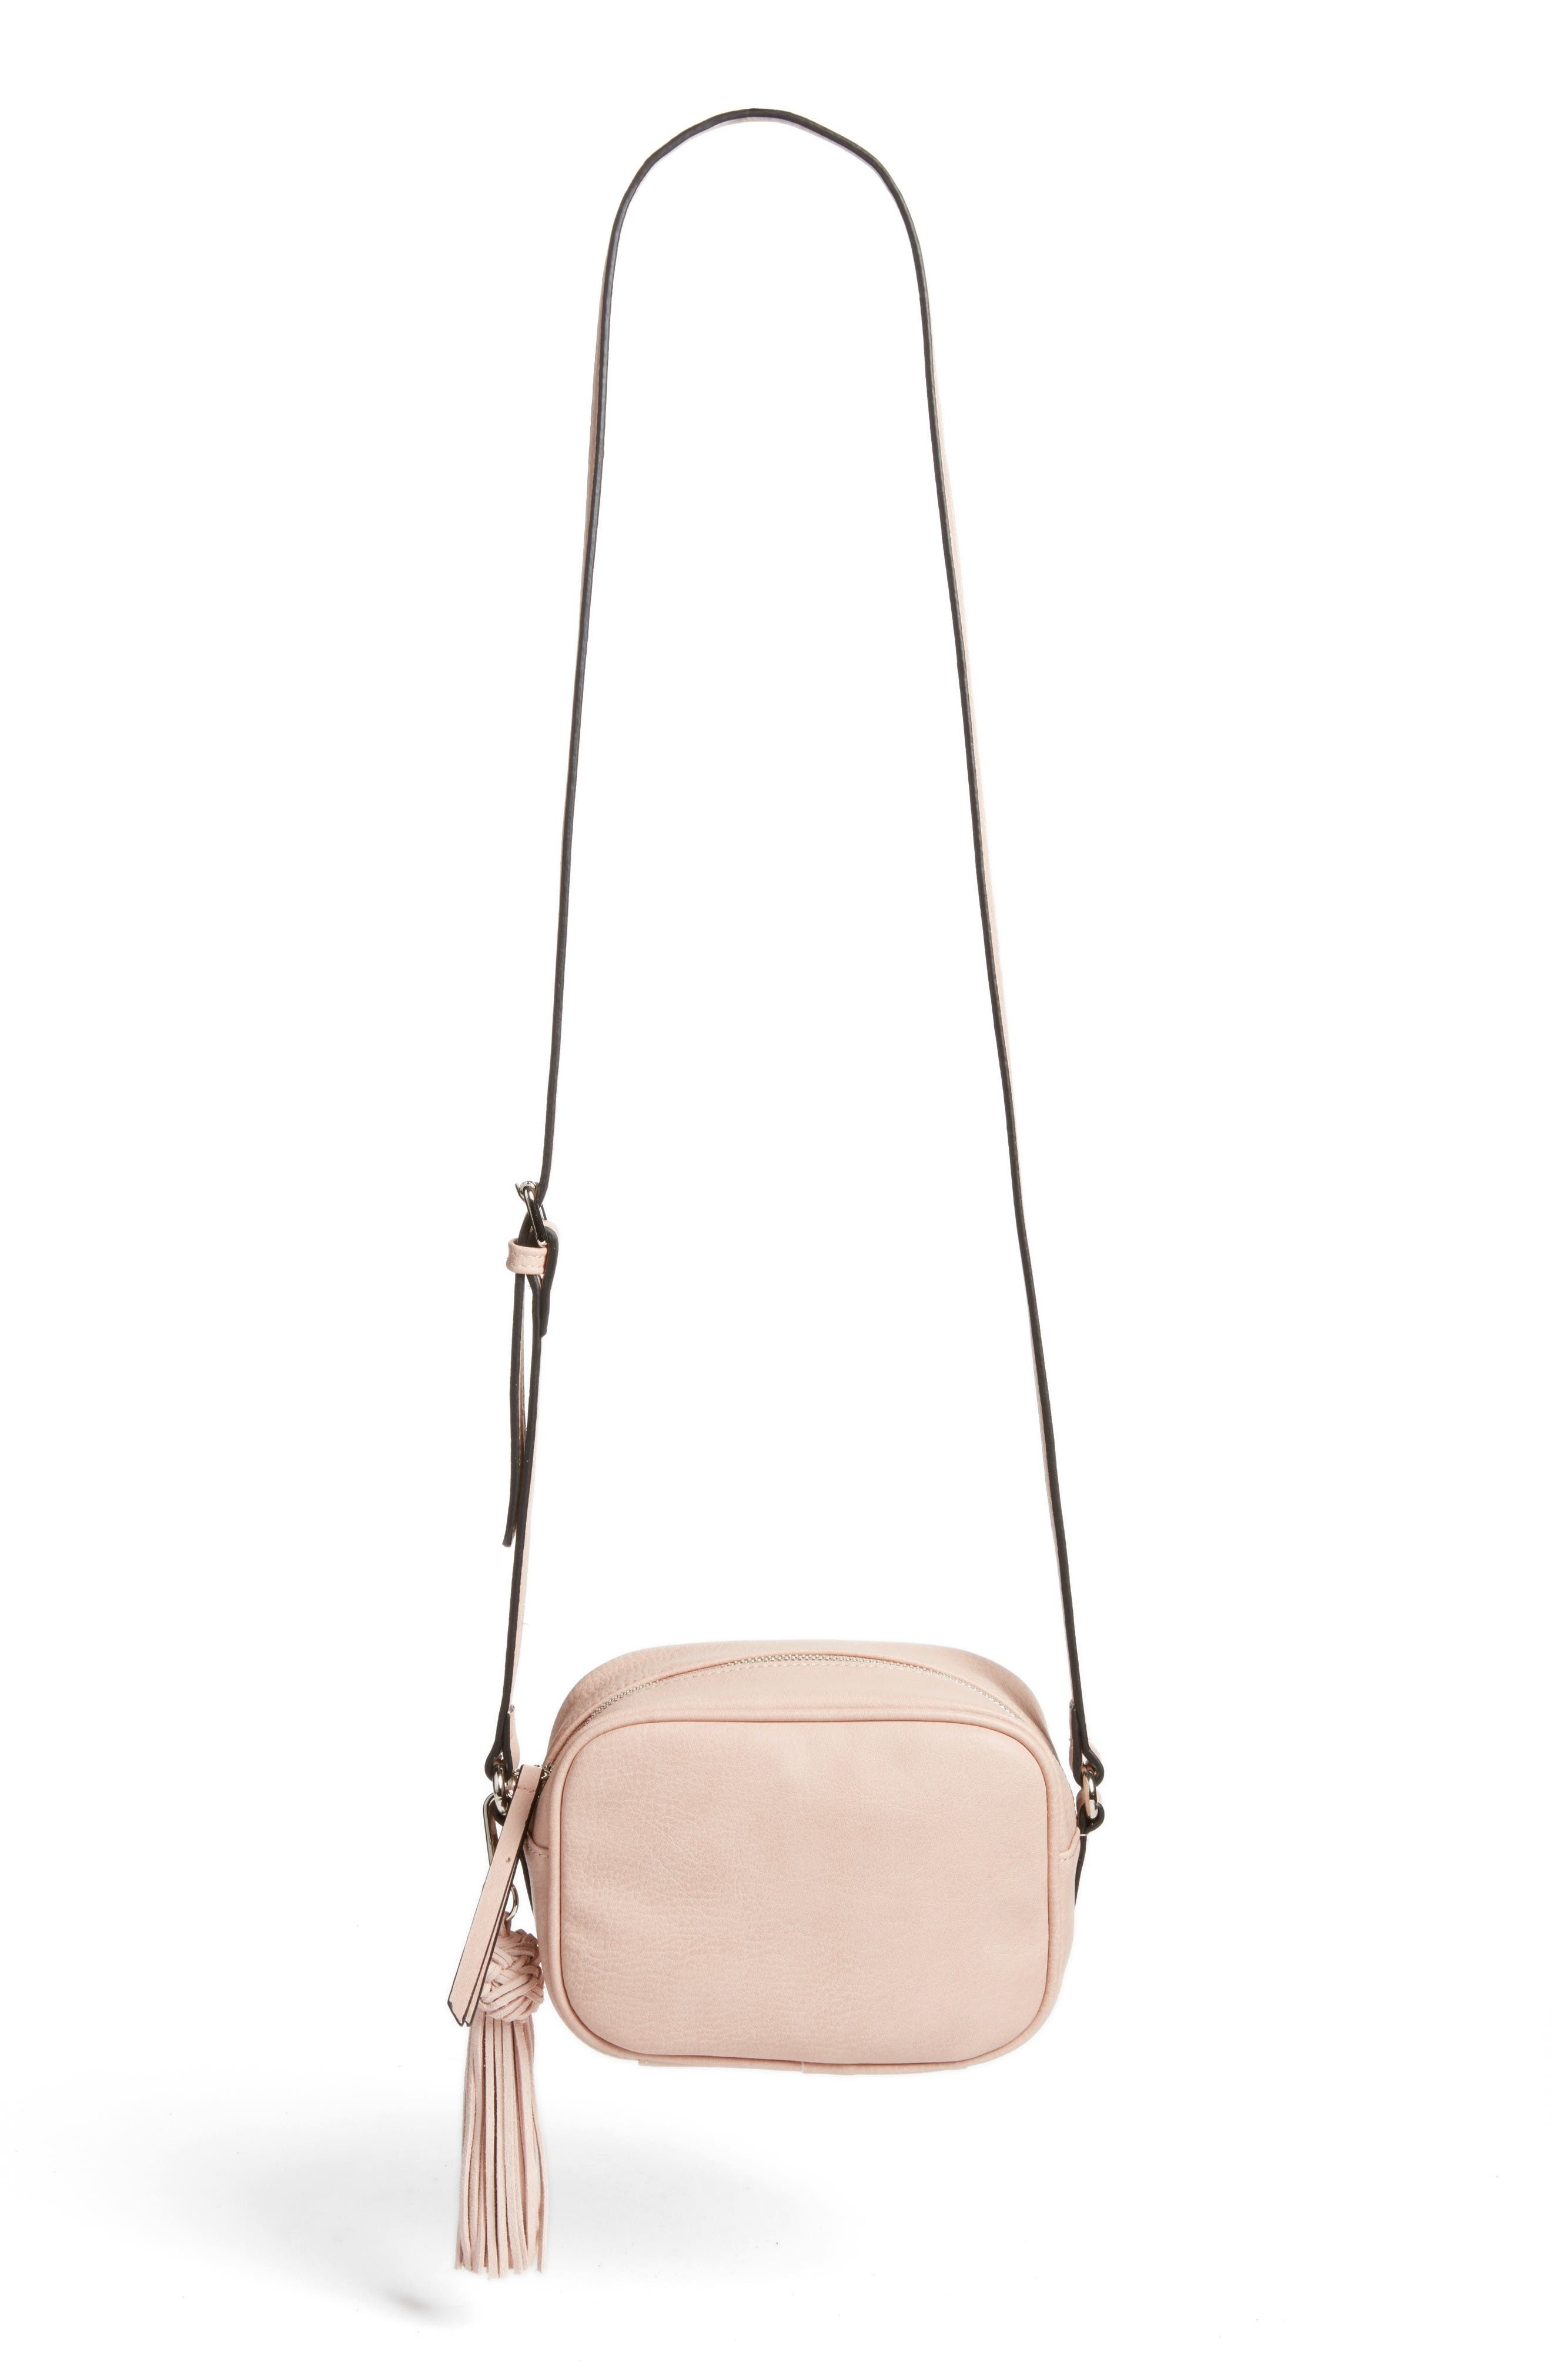 Phase 3 Tassel Faux Leather Crossbody